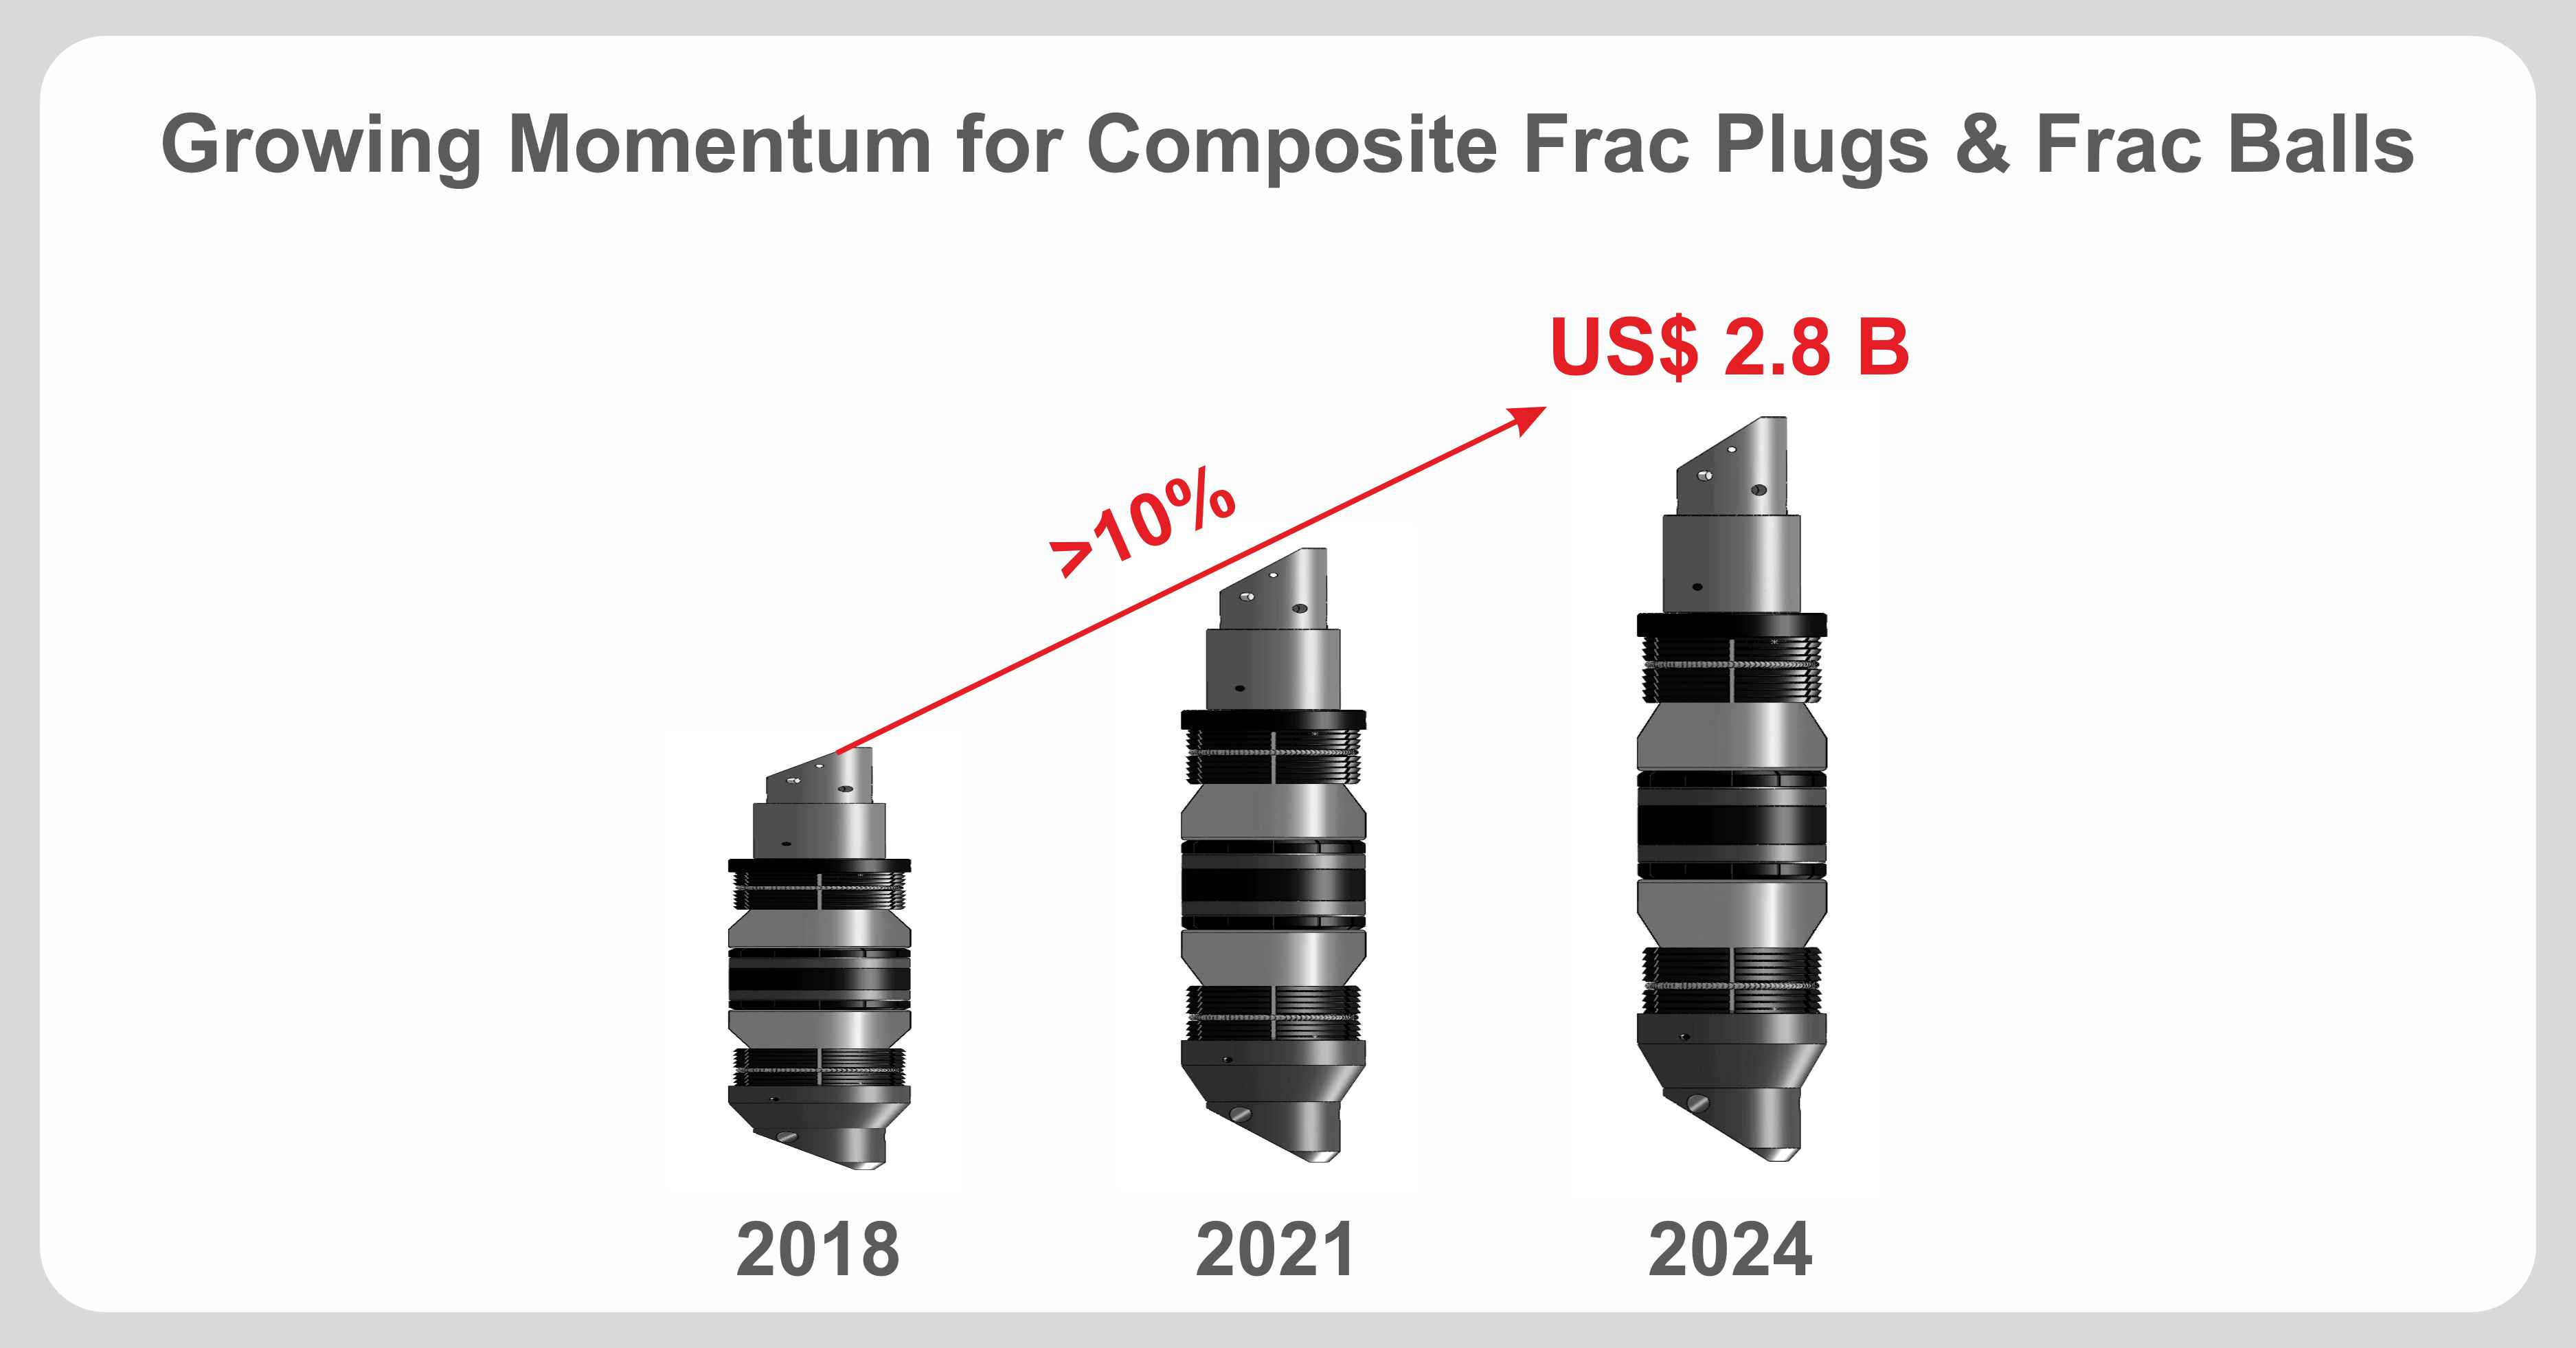 The sound fundamentals and double-digit growth of Composite Frac Plugs & Frac Balls Market